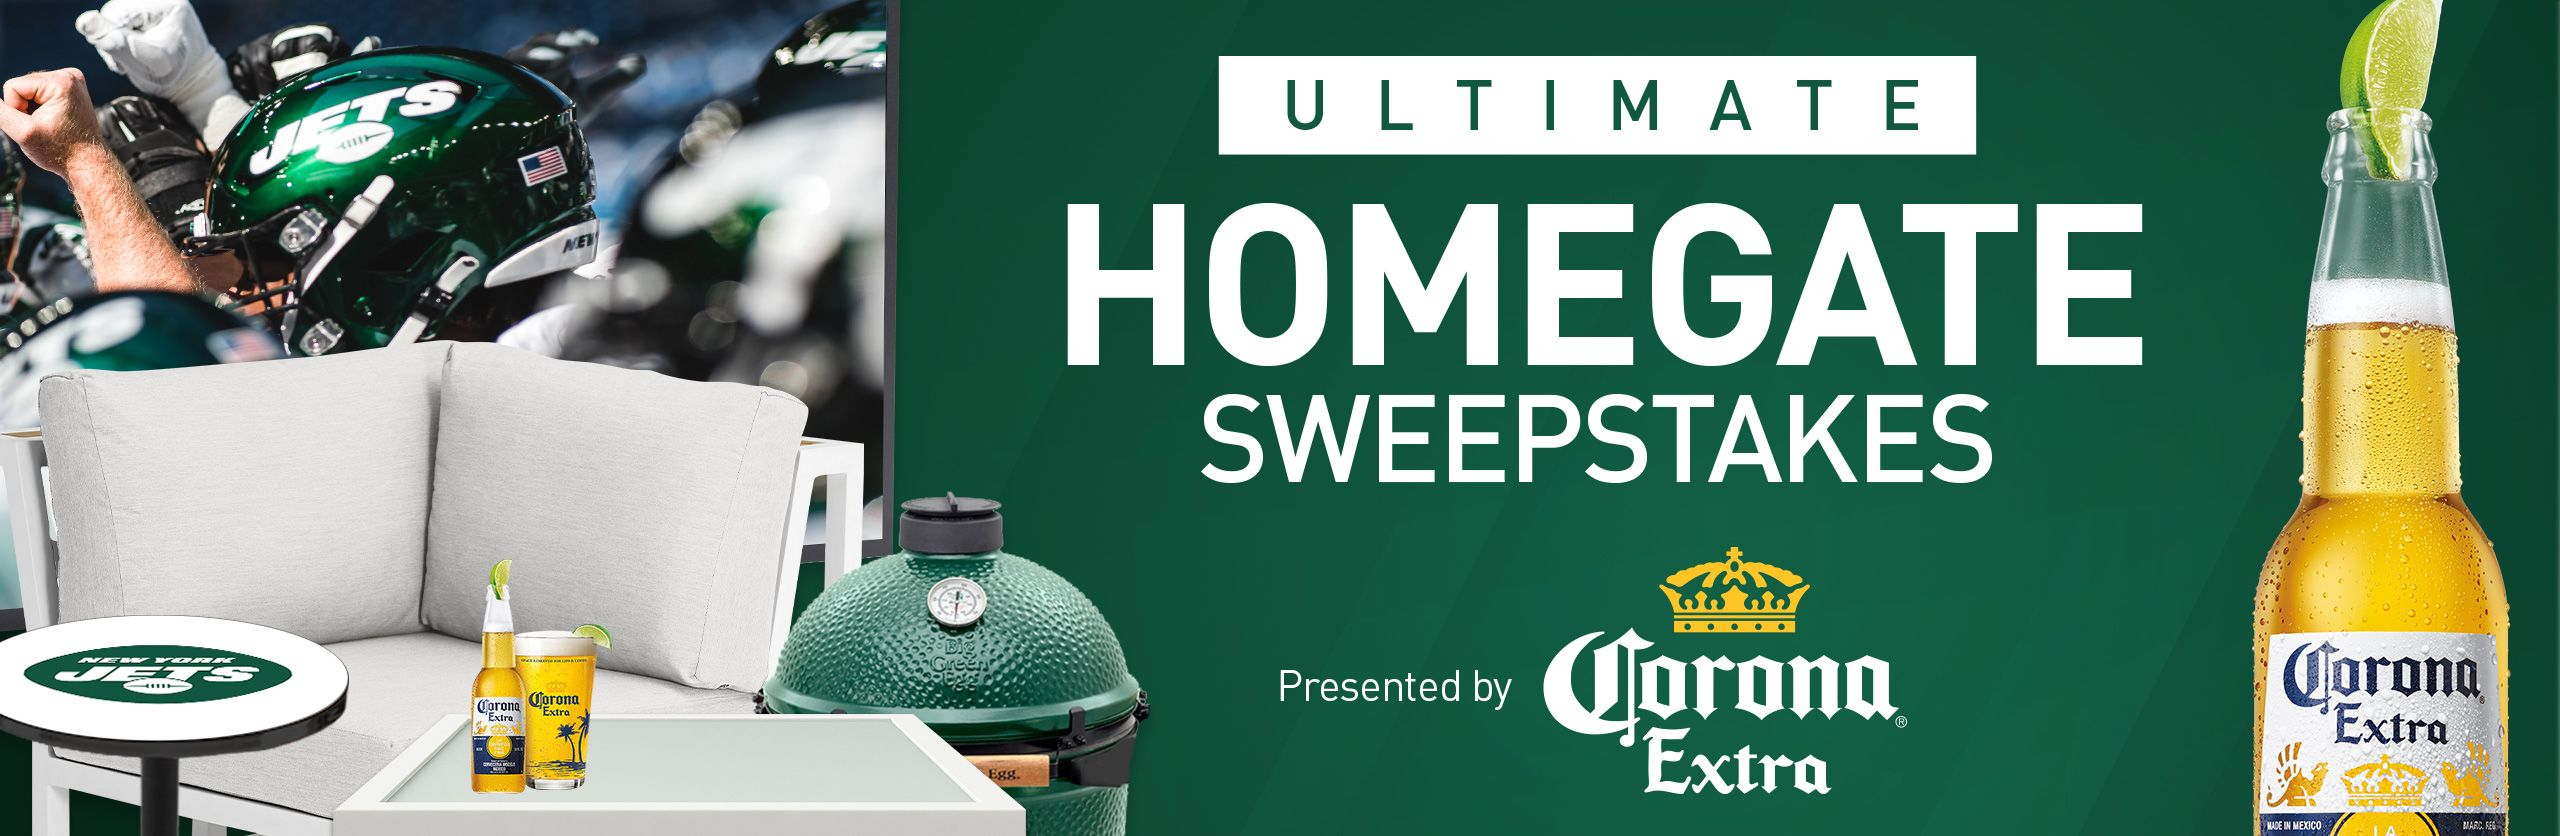 201012-Homegate-Sweepstakes-header